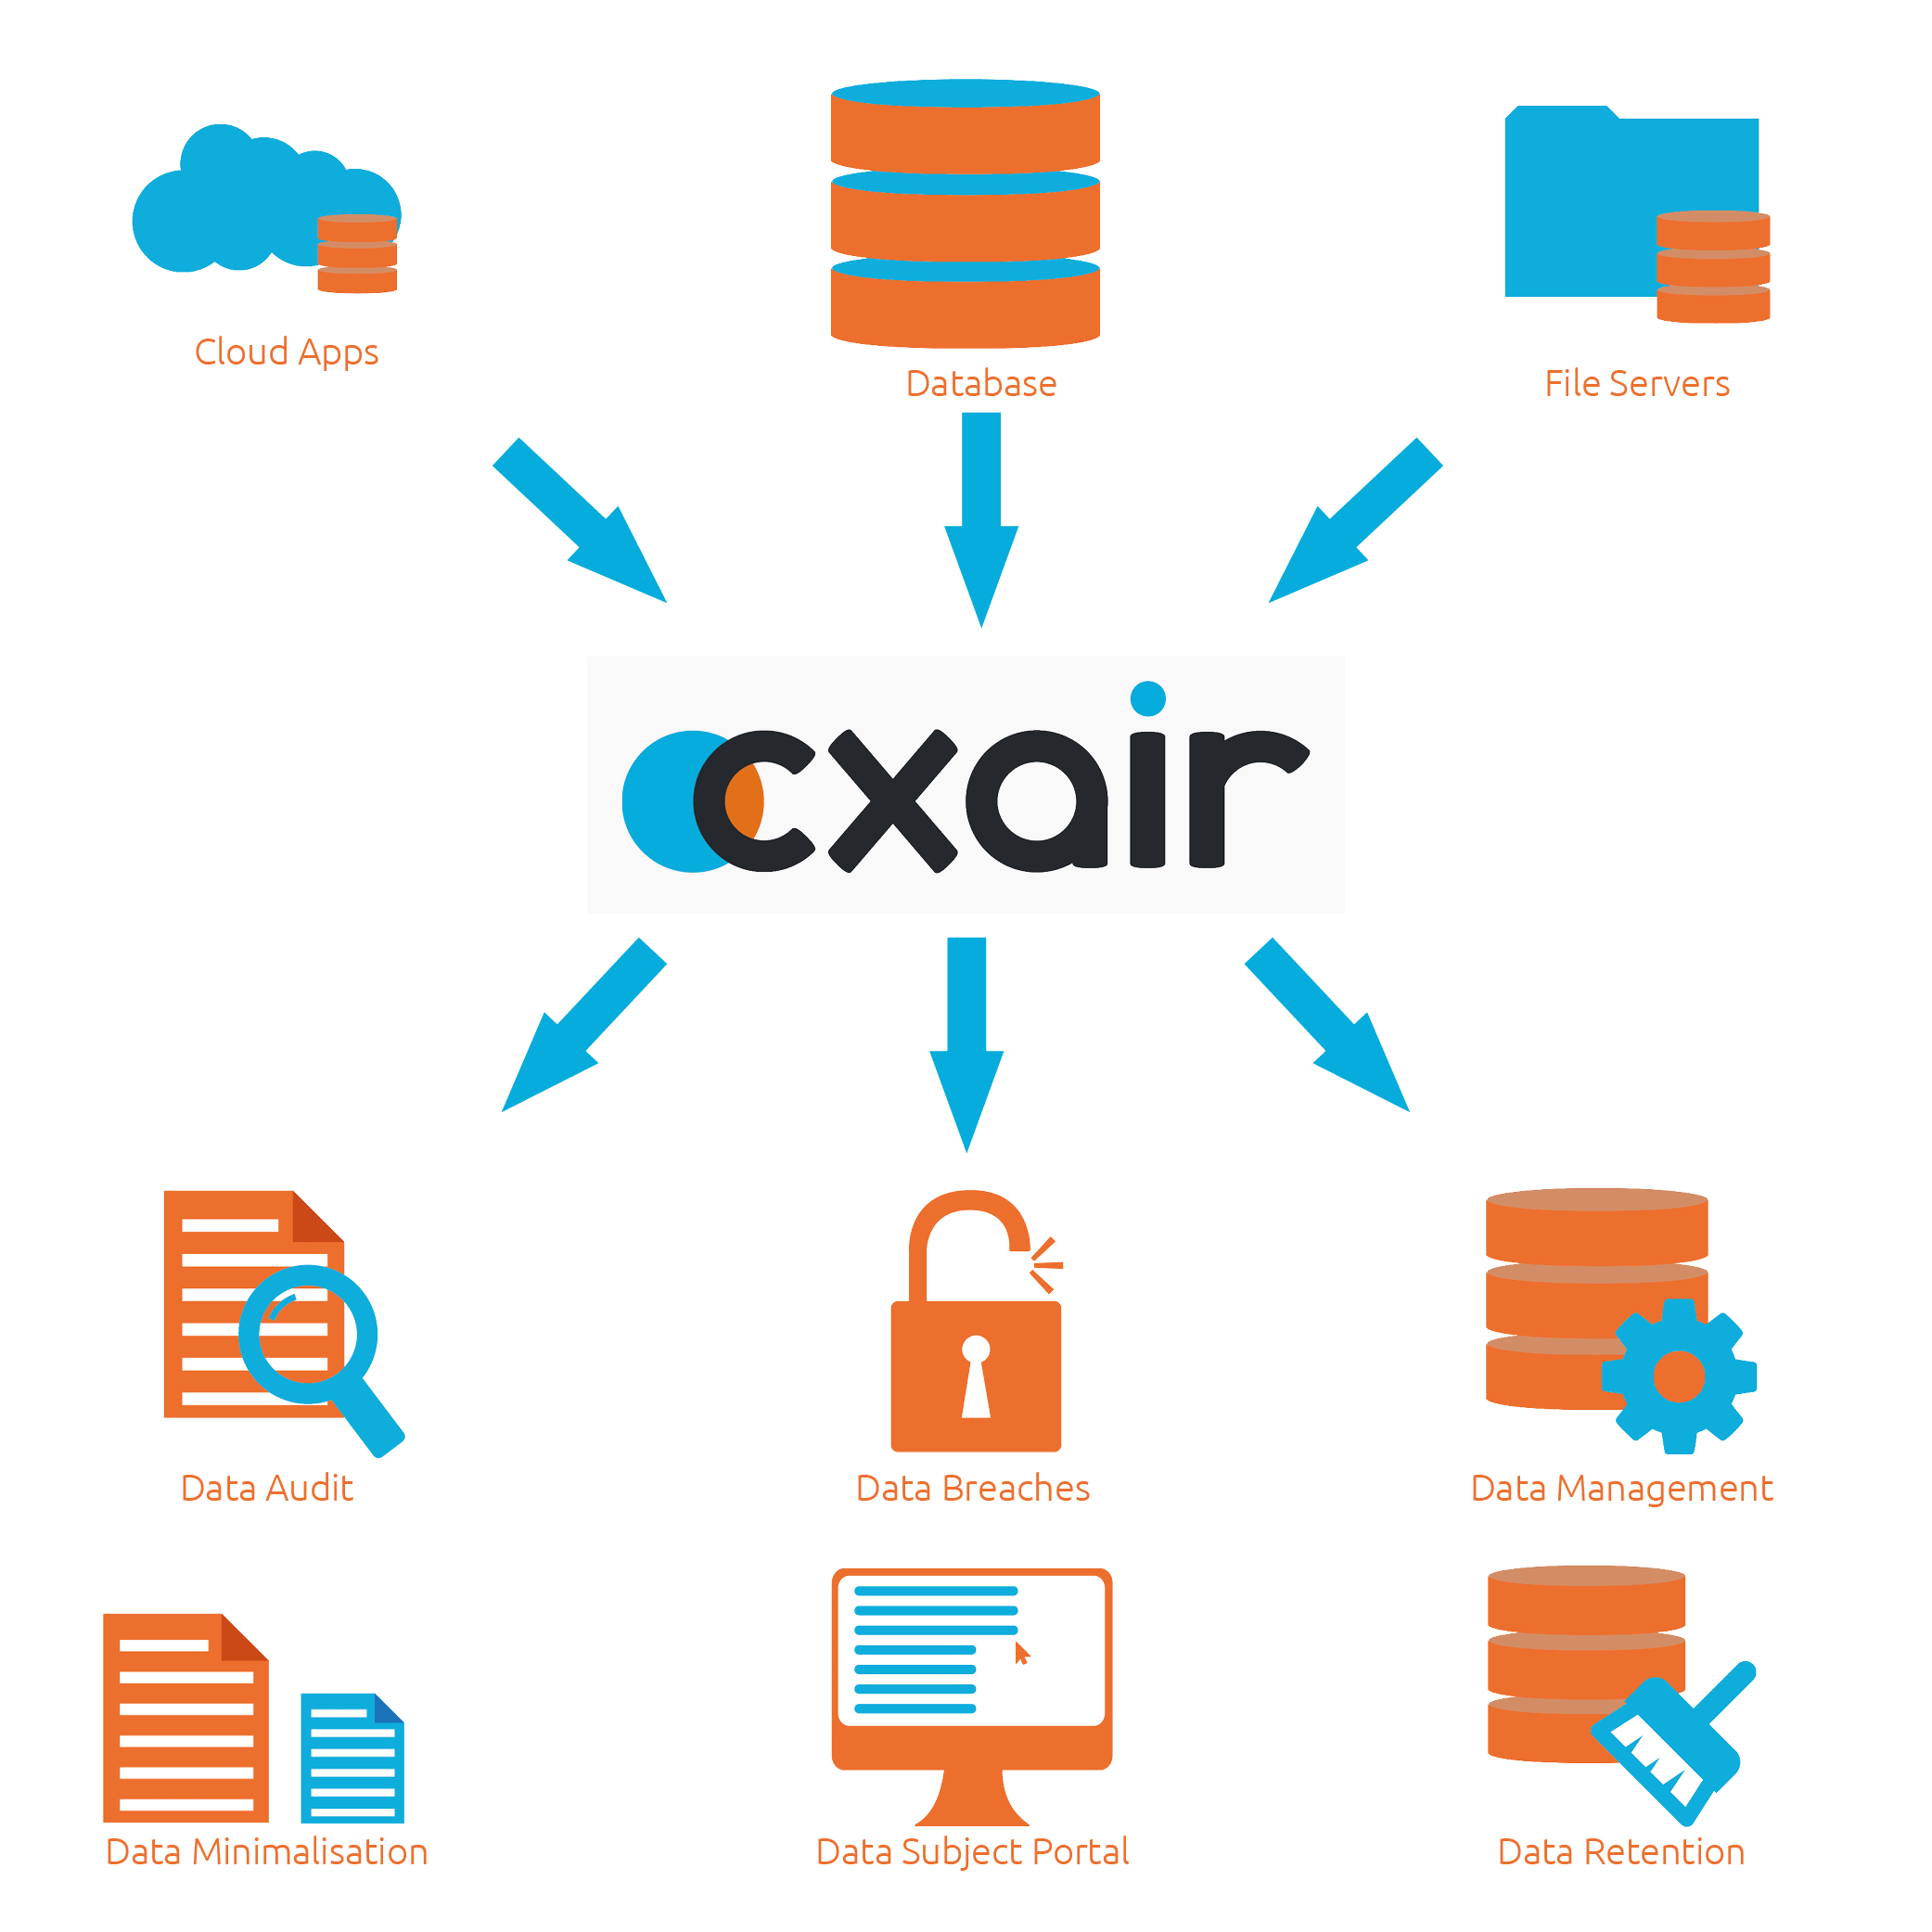 A Diagram to show how CXAIR will help with GDPR readiness